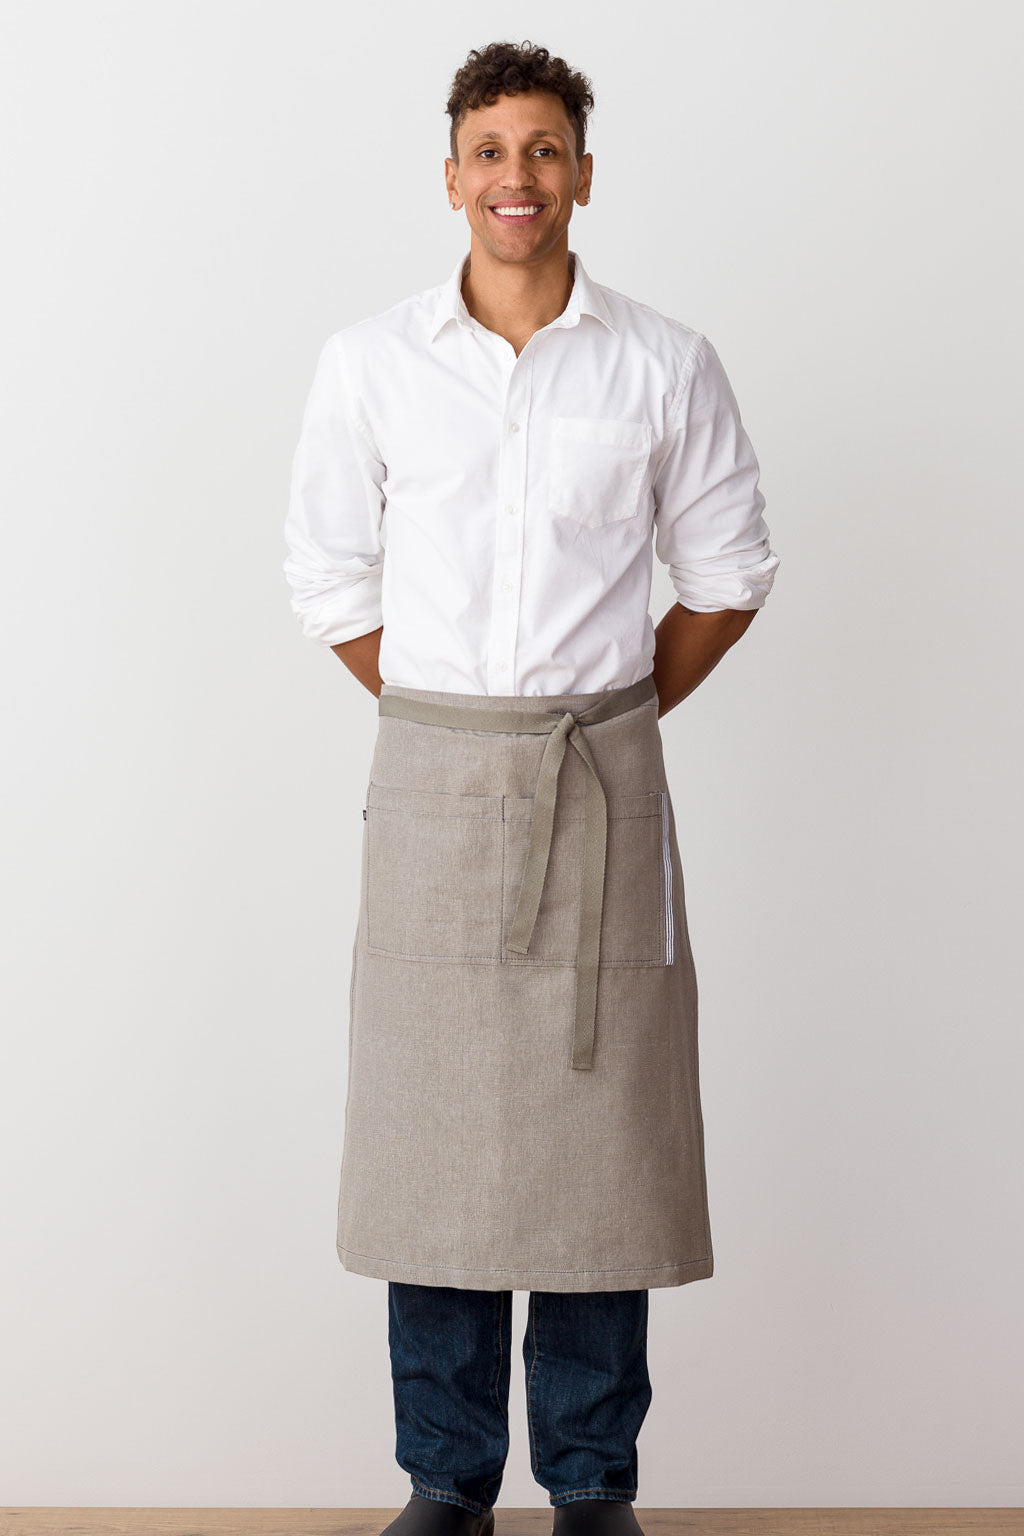 Bistro Longy Apron Tan with Tan Straps, for Men or Women